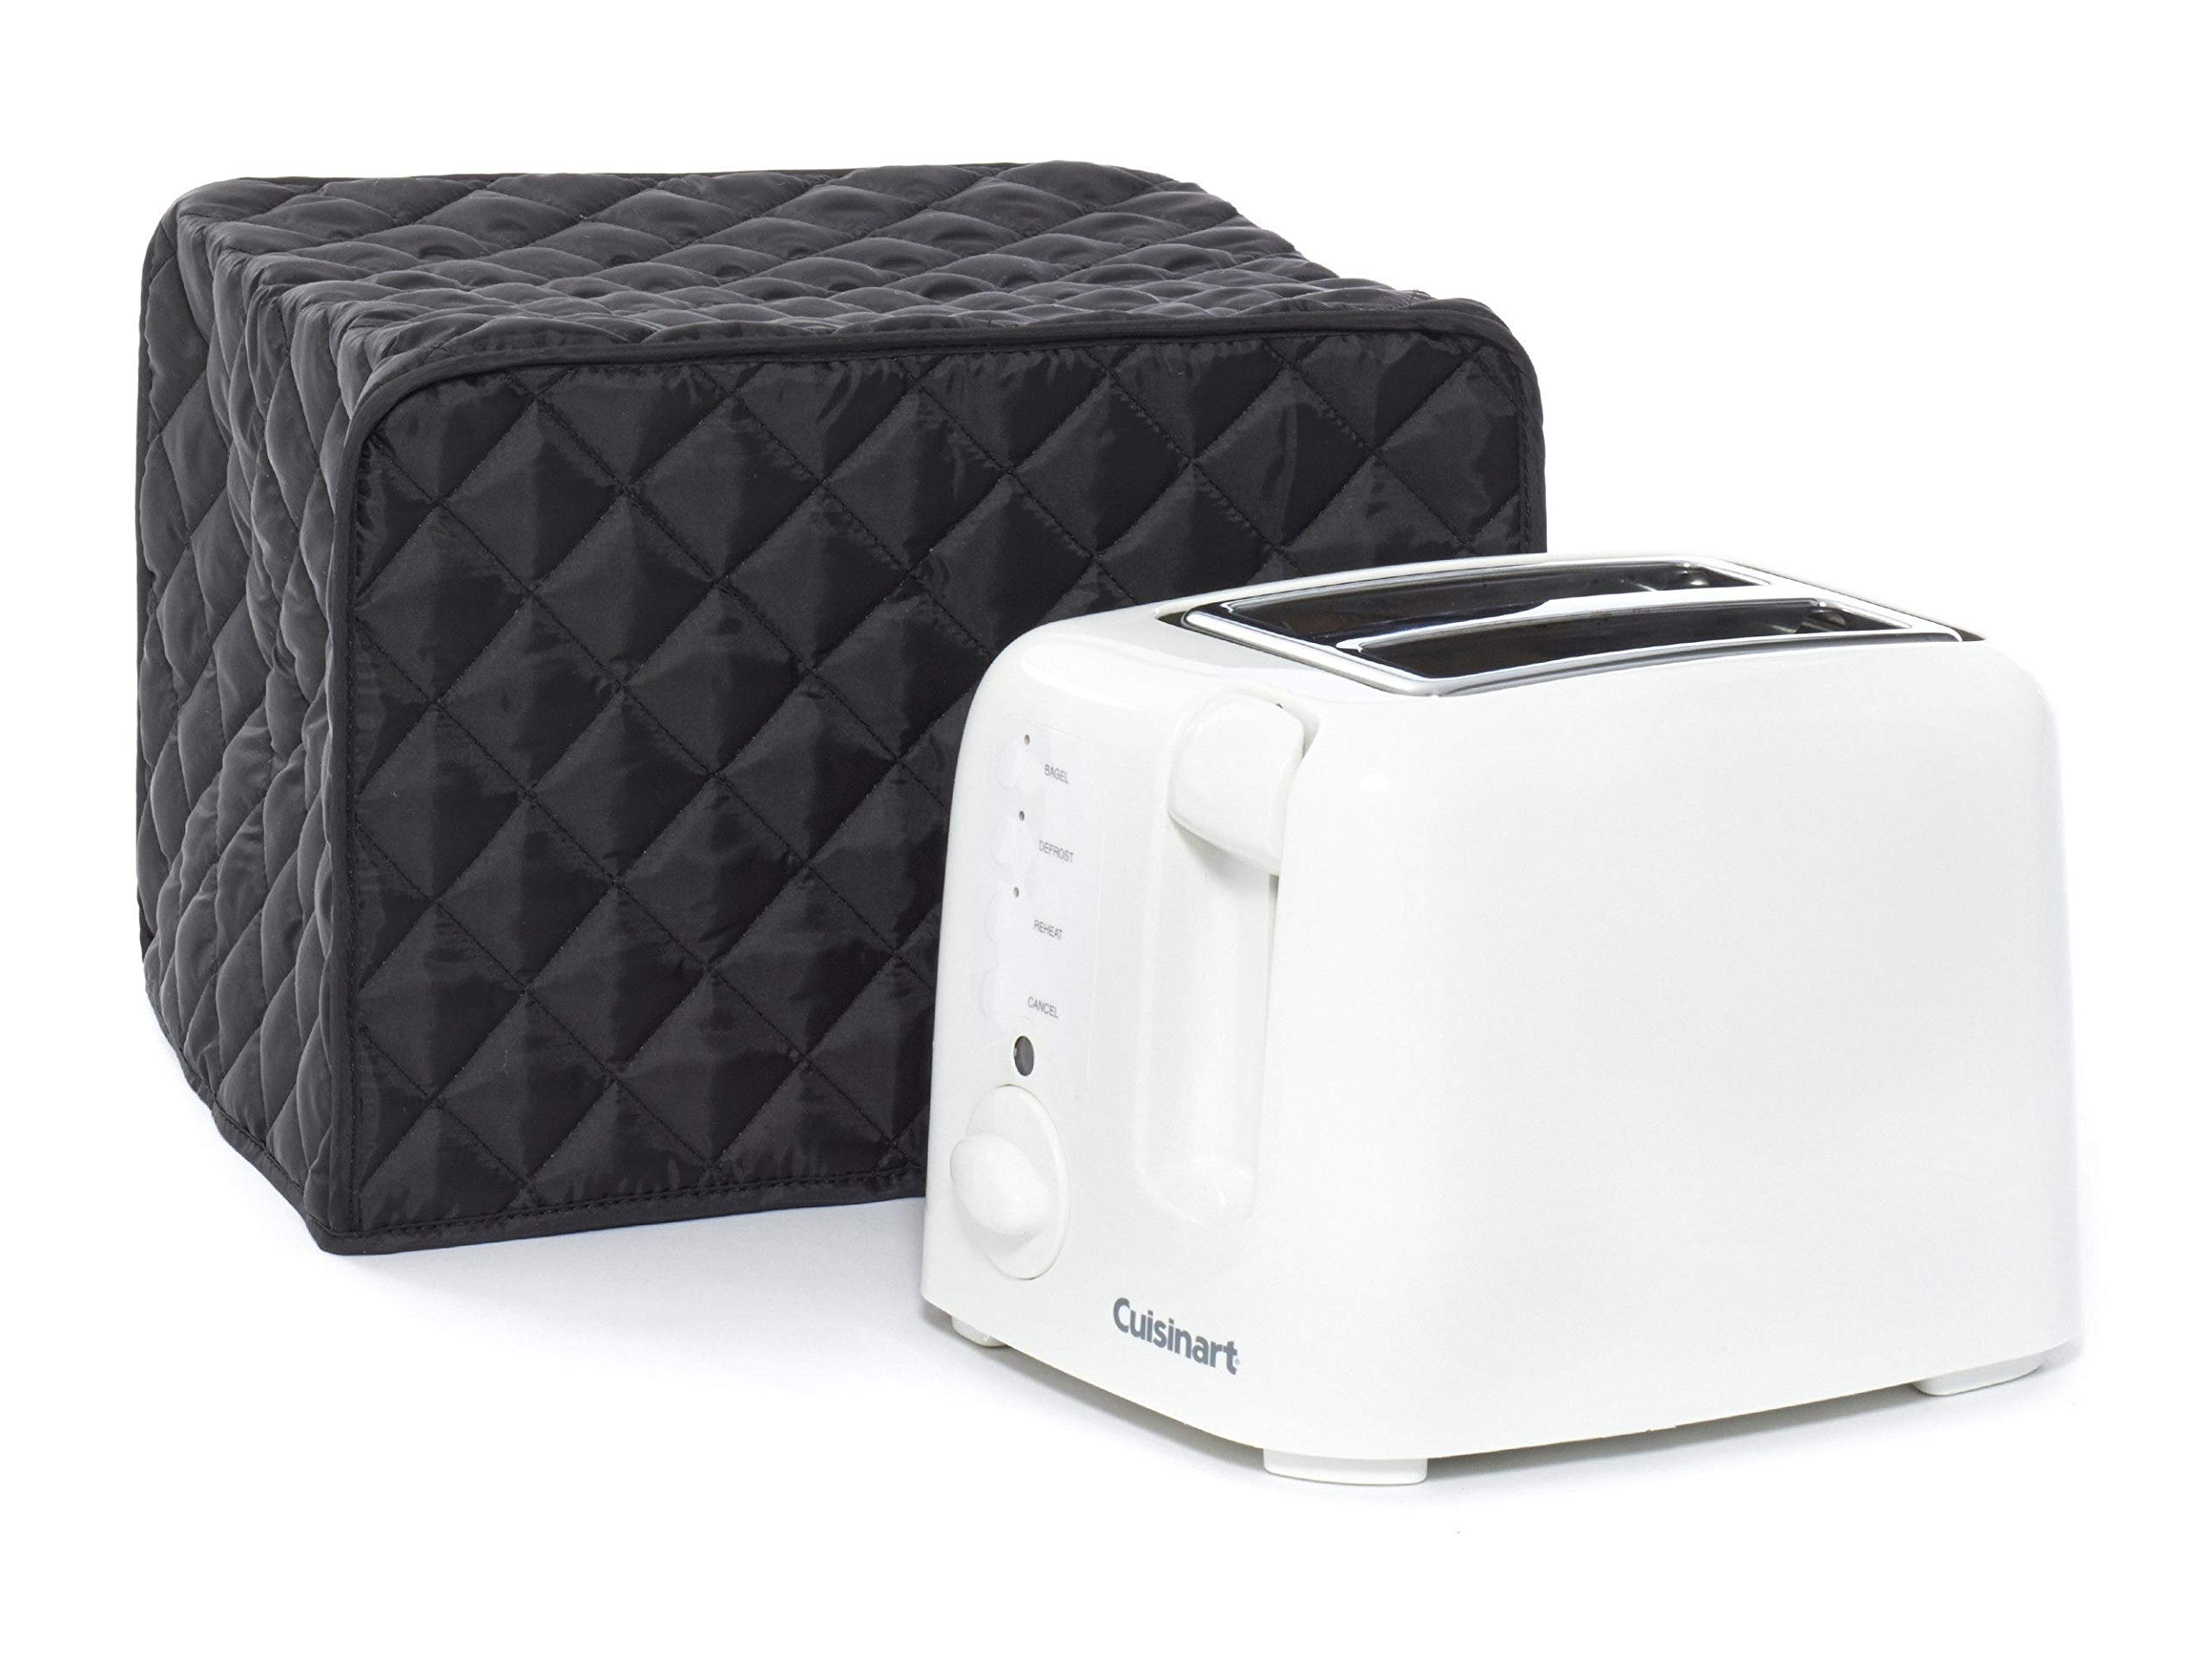 Covermates Keepsakes – Toaster Cover – Dust Protection - Stain Resistant - Washable – Appliance Cover - Black